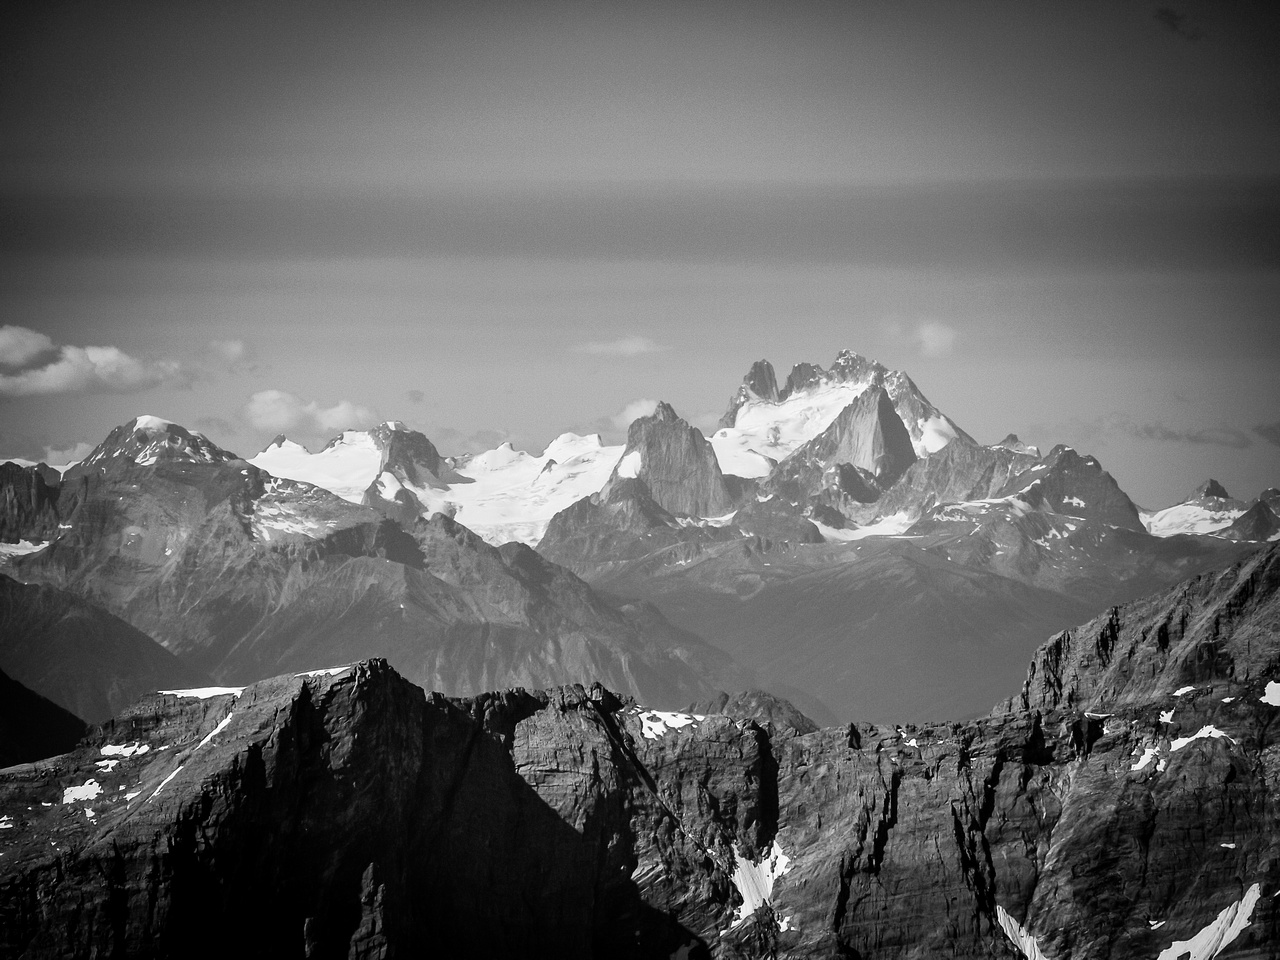 The Bugaboos show up in the far distance - but very clear.